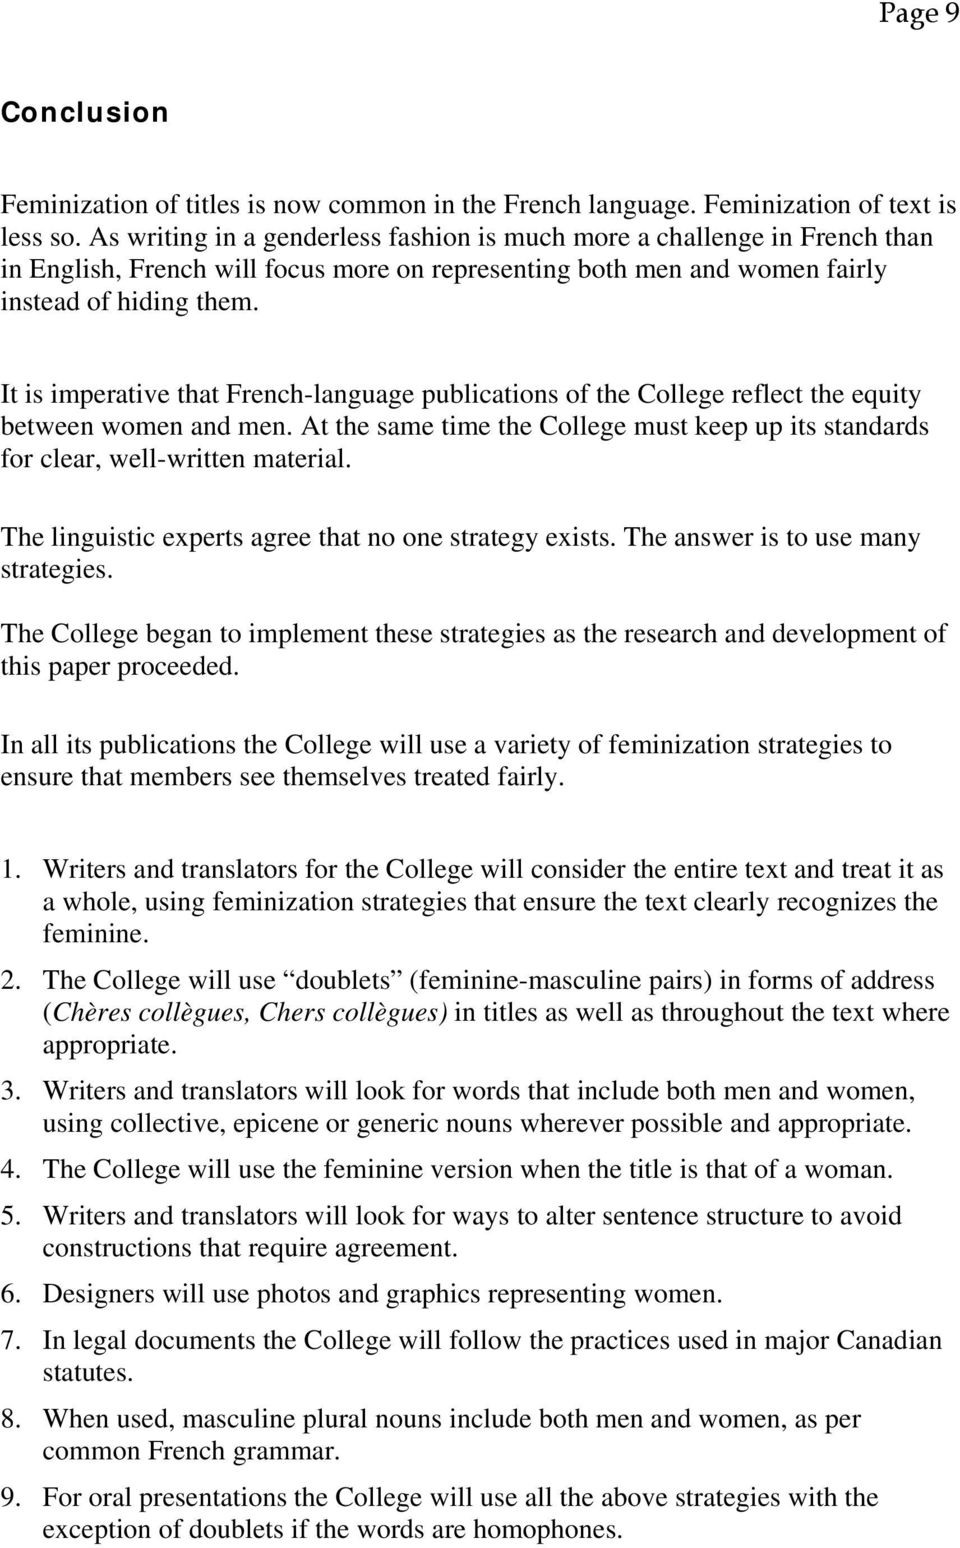 It is imperative that French-language publications of the College reflect the equity between women and men. At the same time the College must keep up its standards for clear, well-written material.